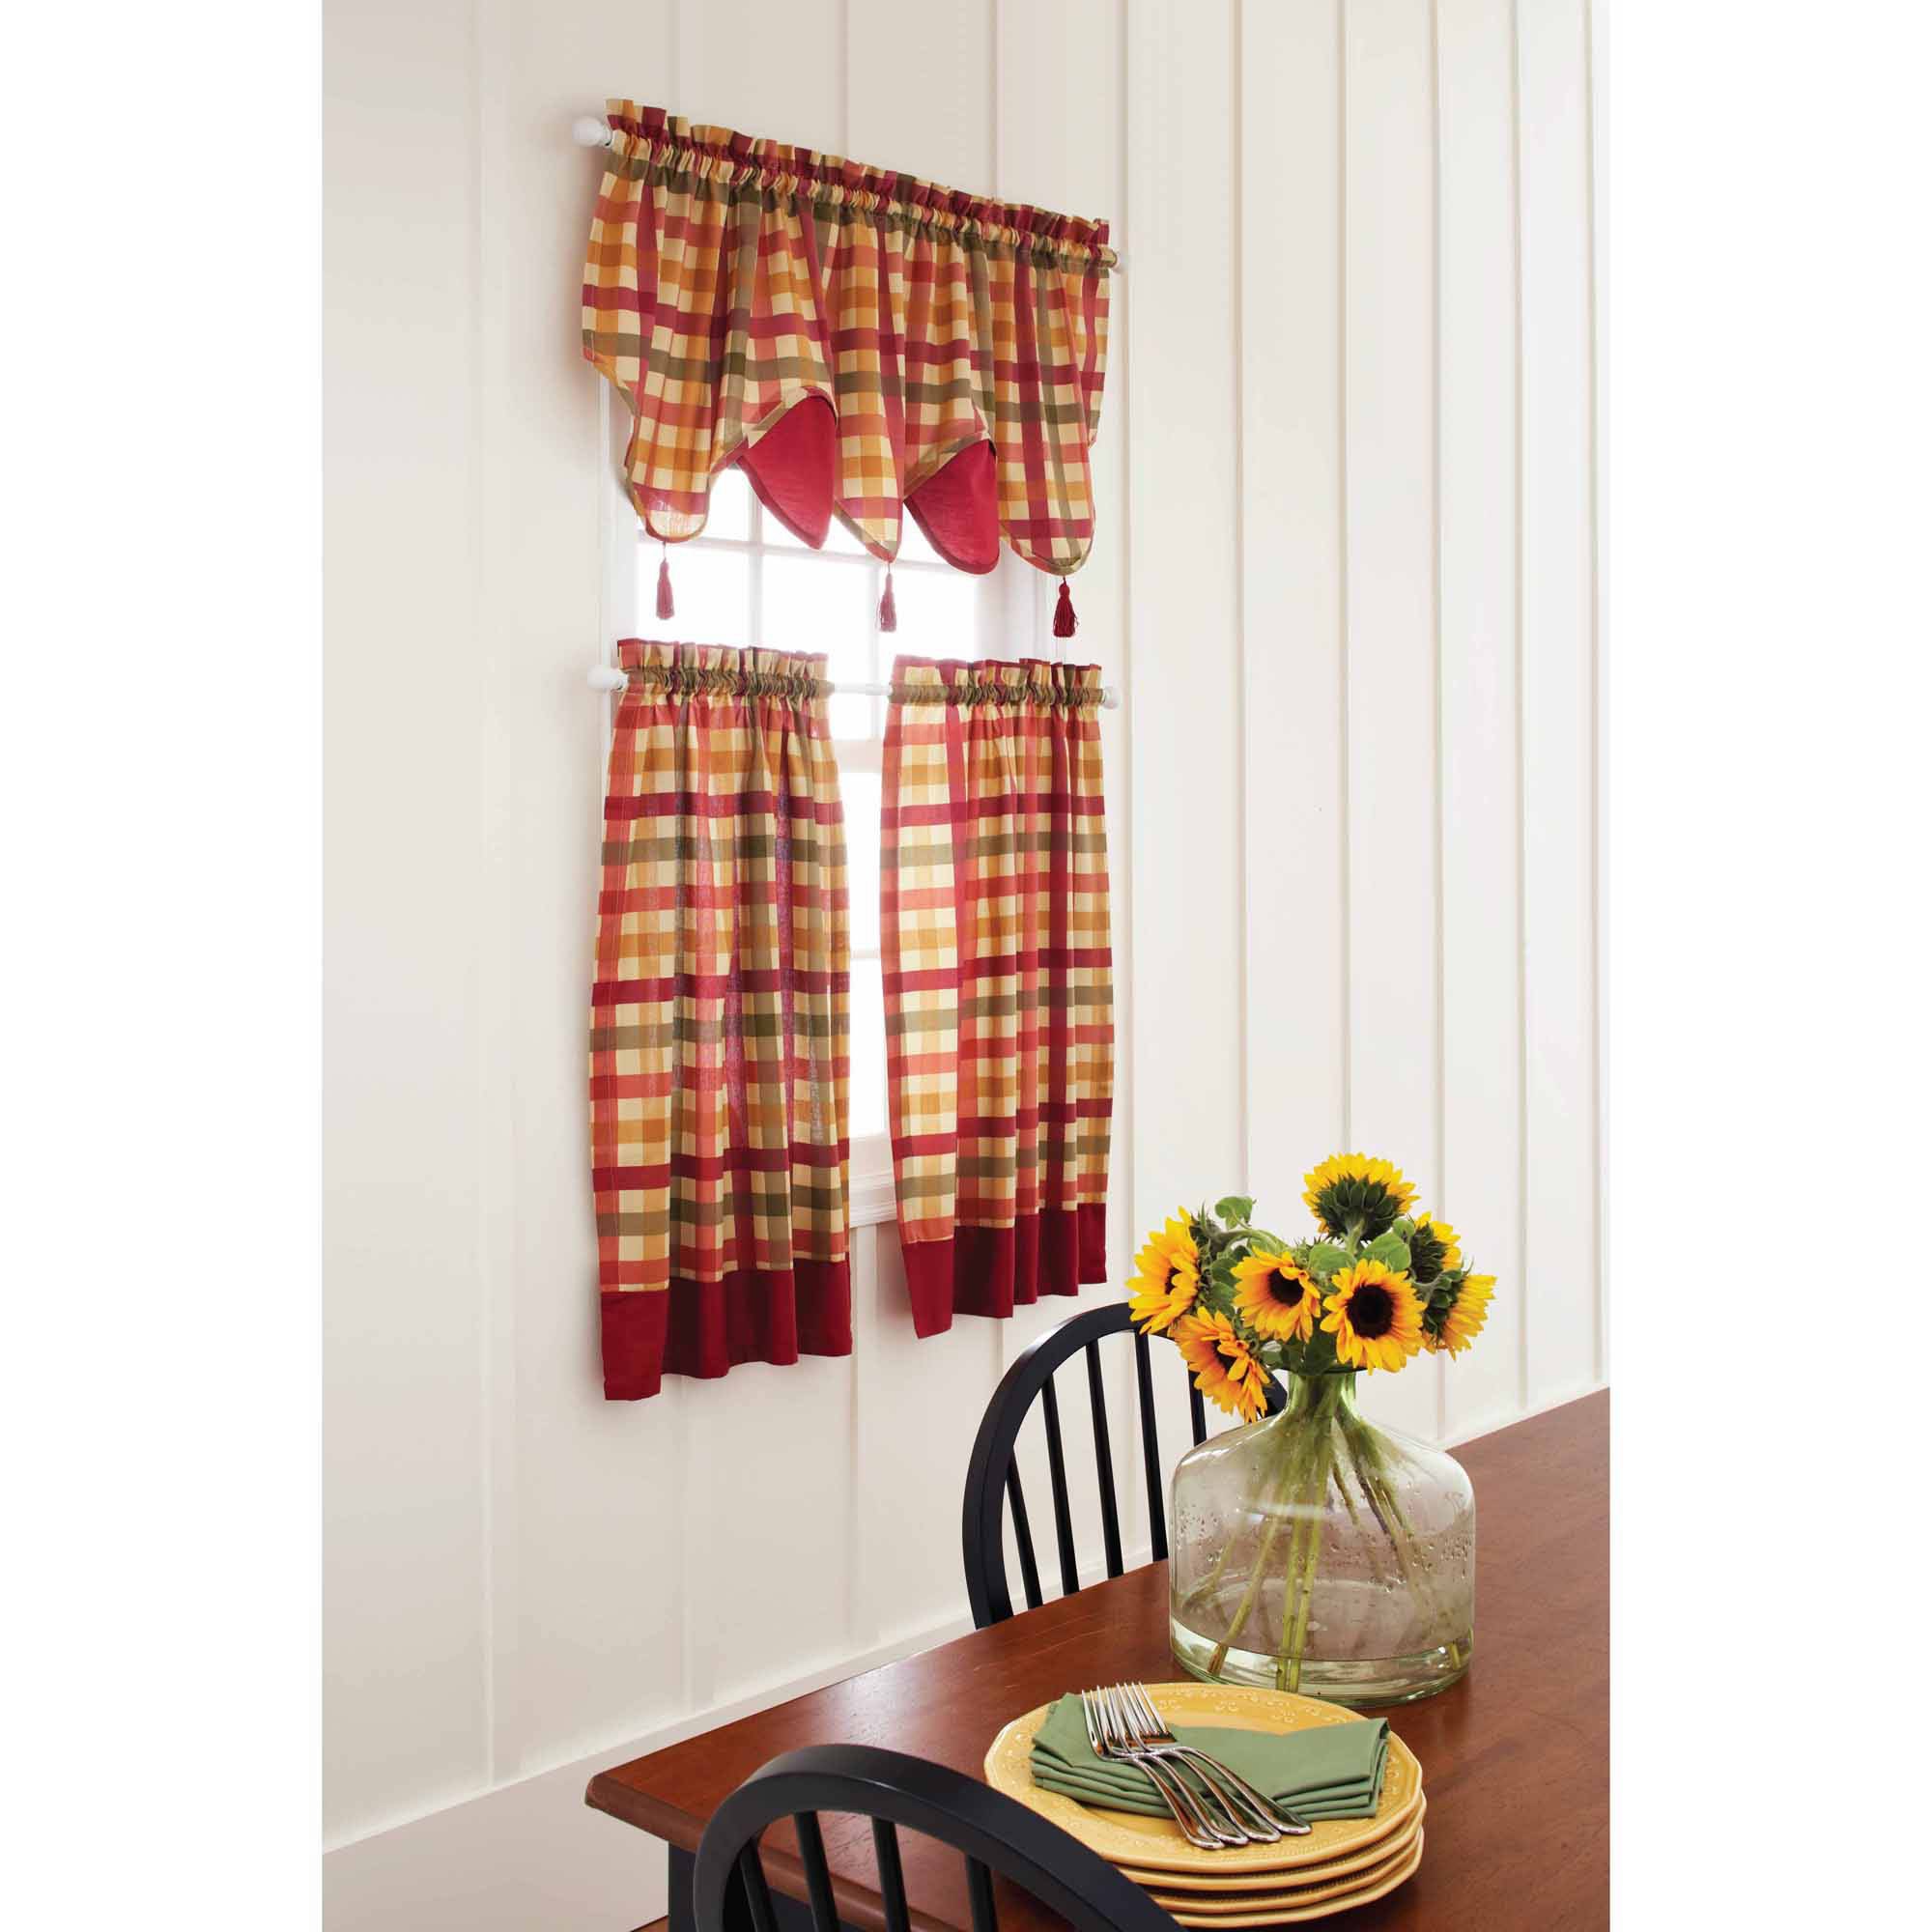 Better Homes and Gardens Red Check Tier, Valance, or Swag Valance